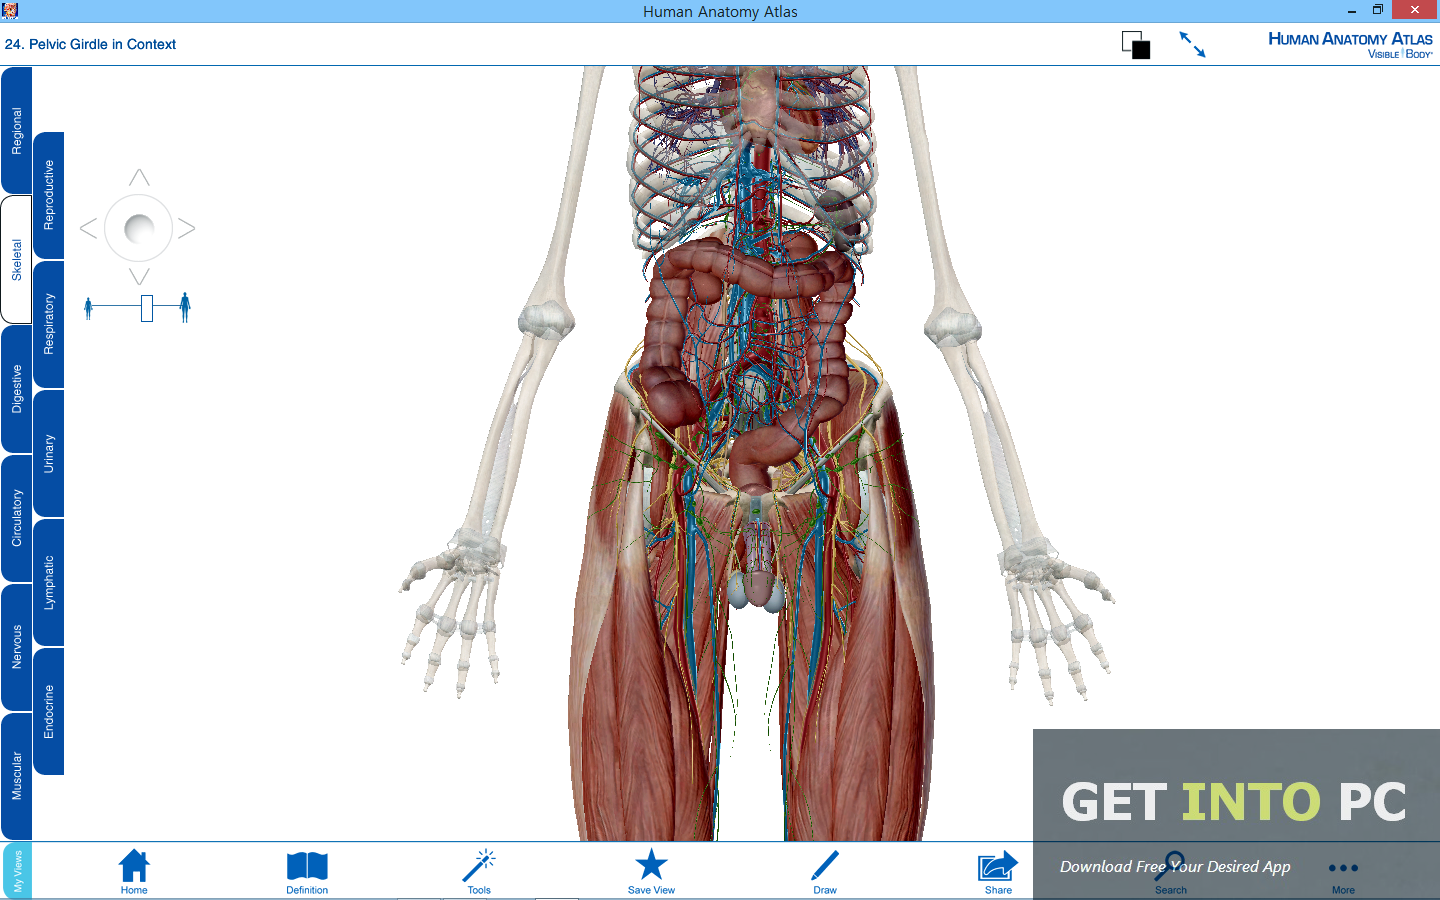 Visible Body Human Anatomy Atlas Offline Installer